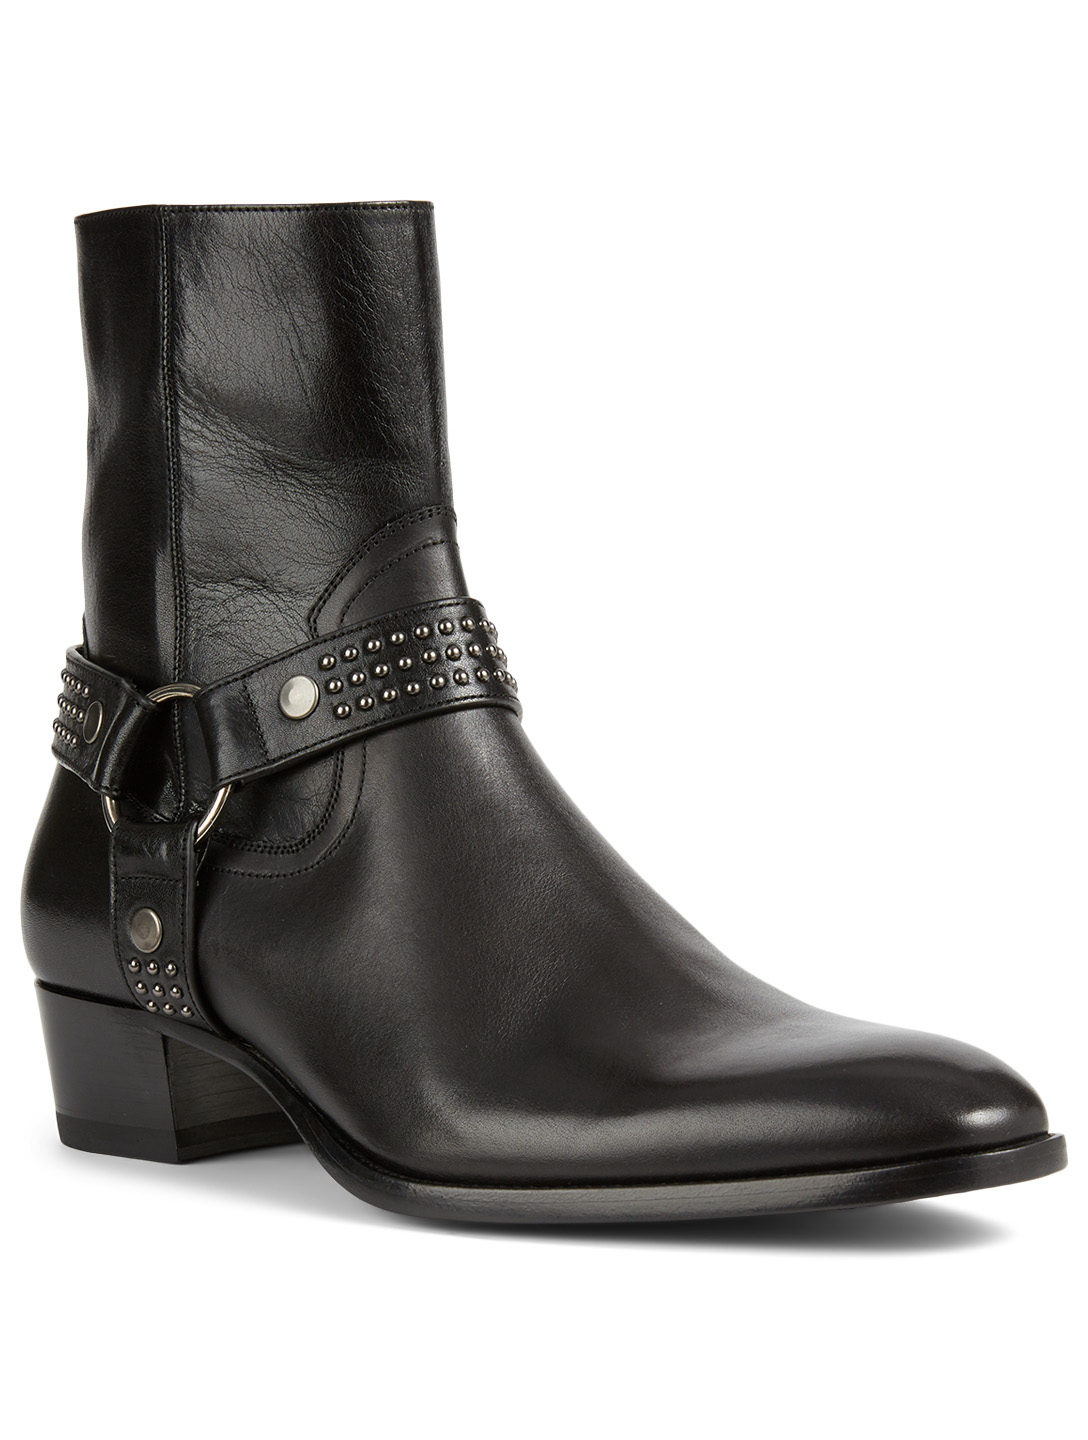 SAINT LAURENT Wyatt Leather Harness Ankle Boots Men's Black